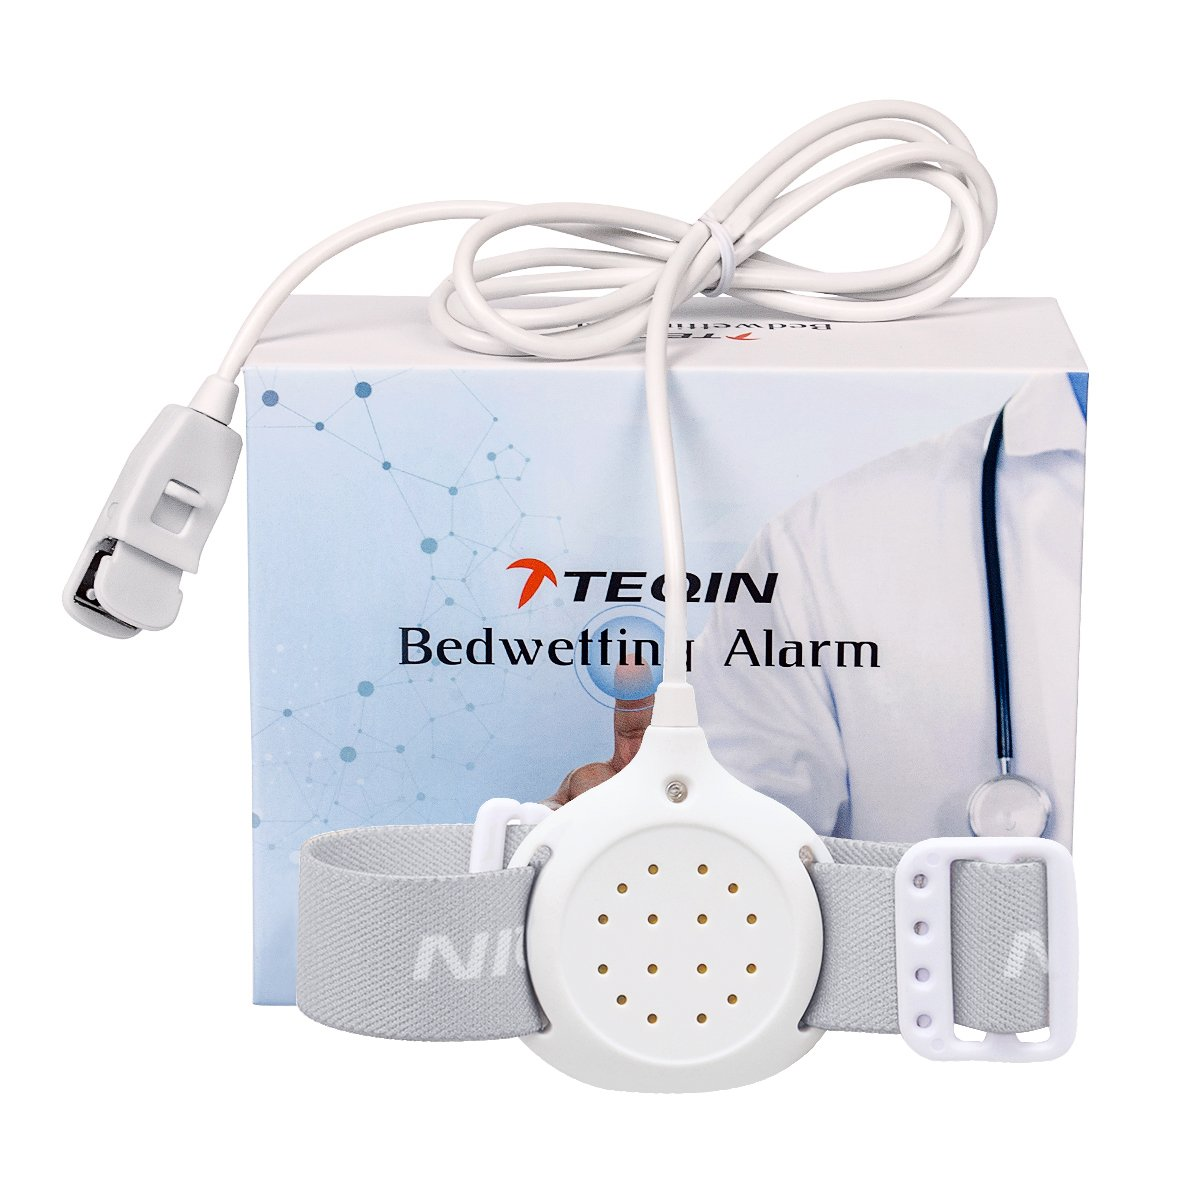 TEQIN Upgraded Bedwetting Enuresis Alarm with Loud Sound and Strong Vibration for Boys, Girls, Deep Sleepers-Potty Trainning Alarm